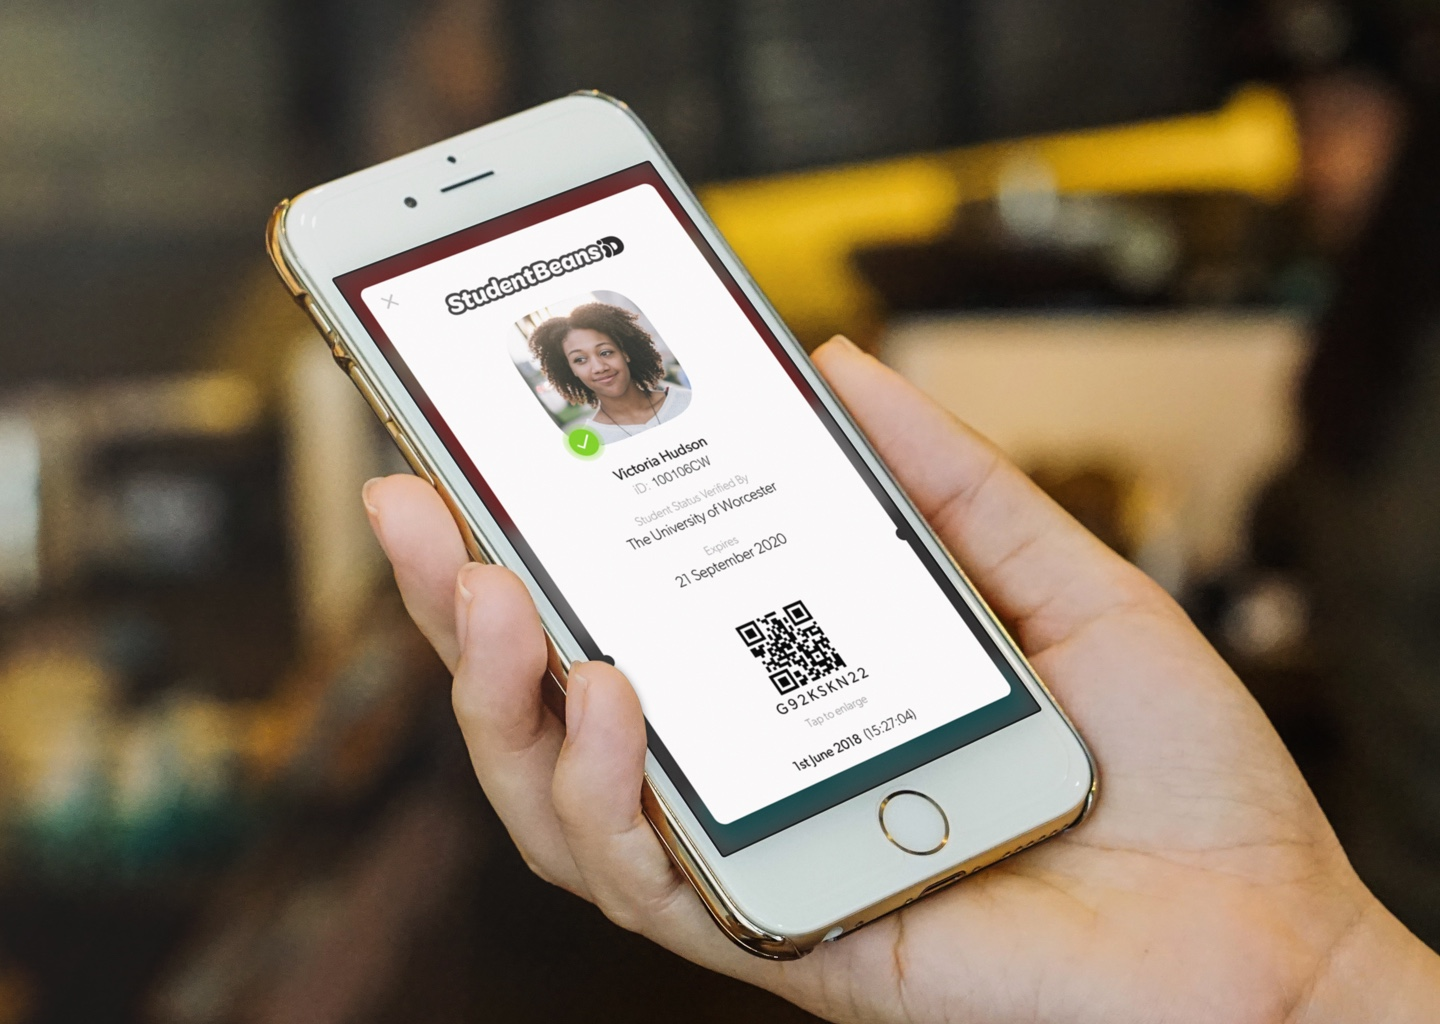 Student Beans iD - When ready to pay customers simply show their Student Beans iD at checkout to complete their purchase.SBiD is 100% secure and cannot be faked like plastic student cards, free for all students & officially verified by schools, colleges and universities.